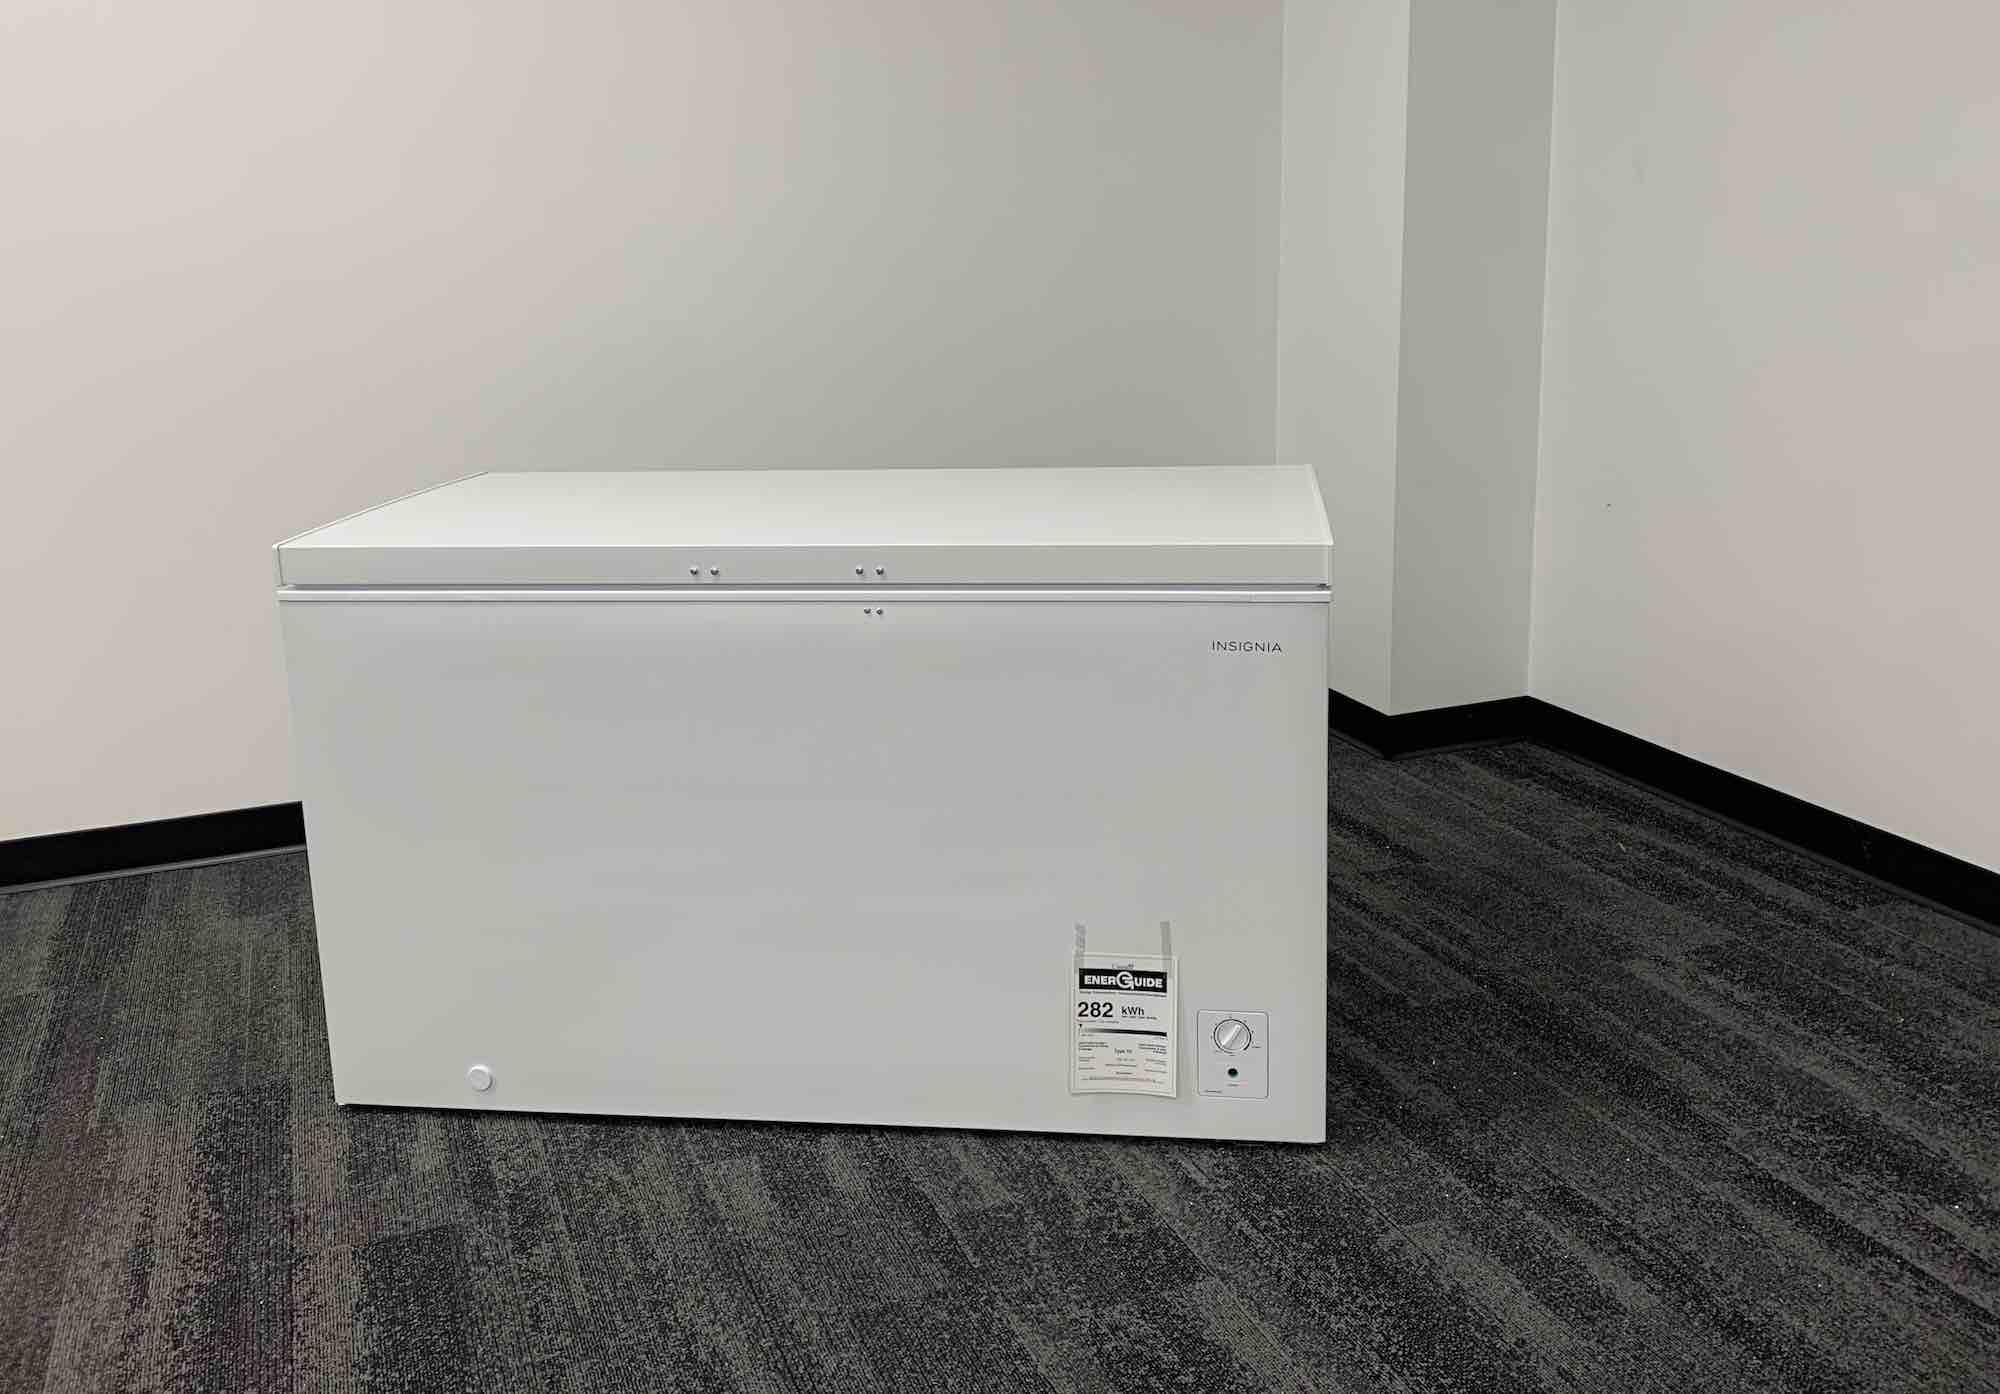 Insignia chest freezer review